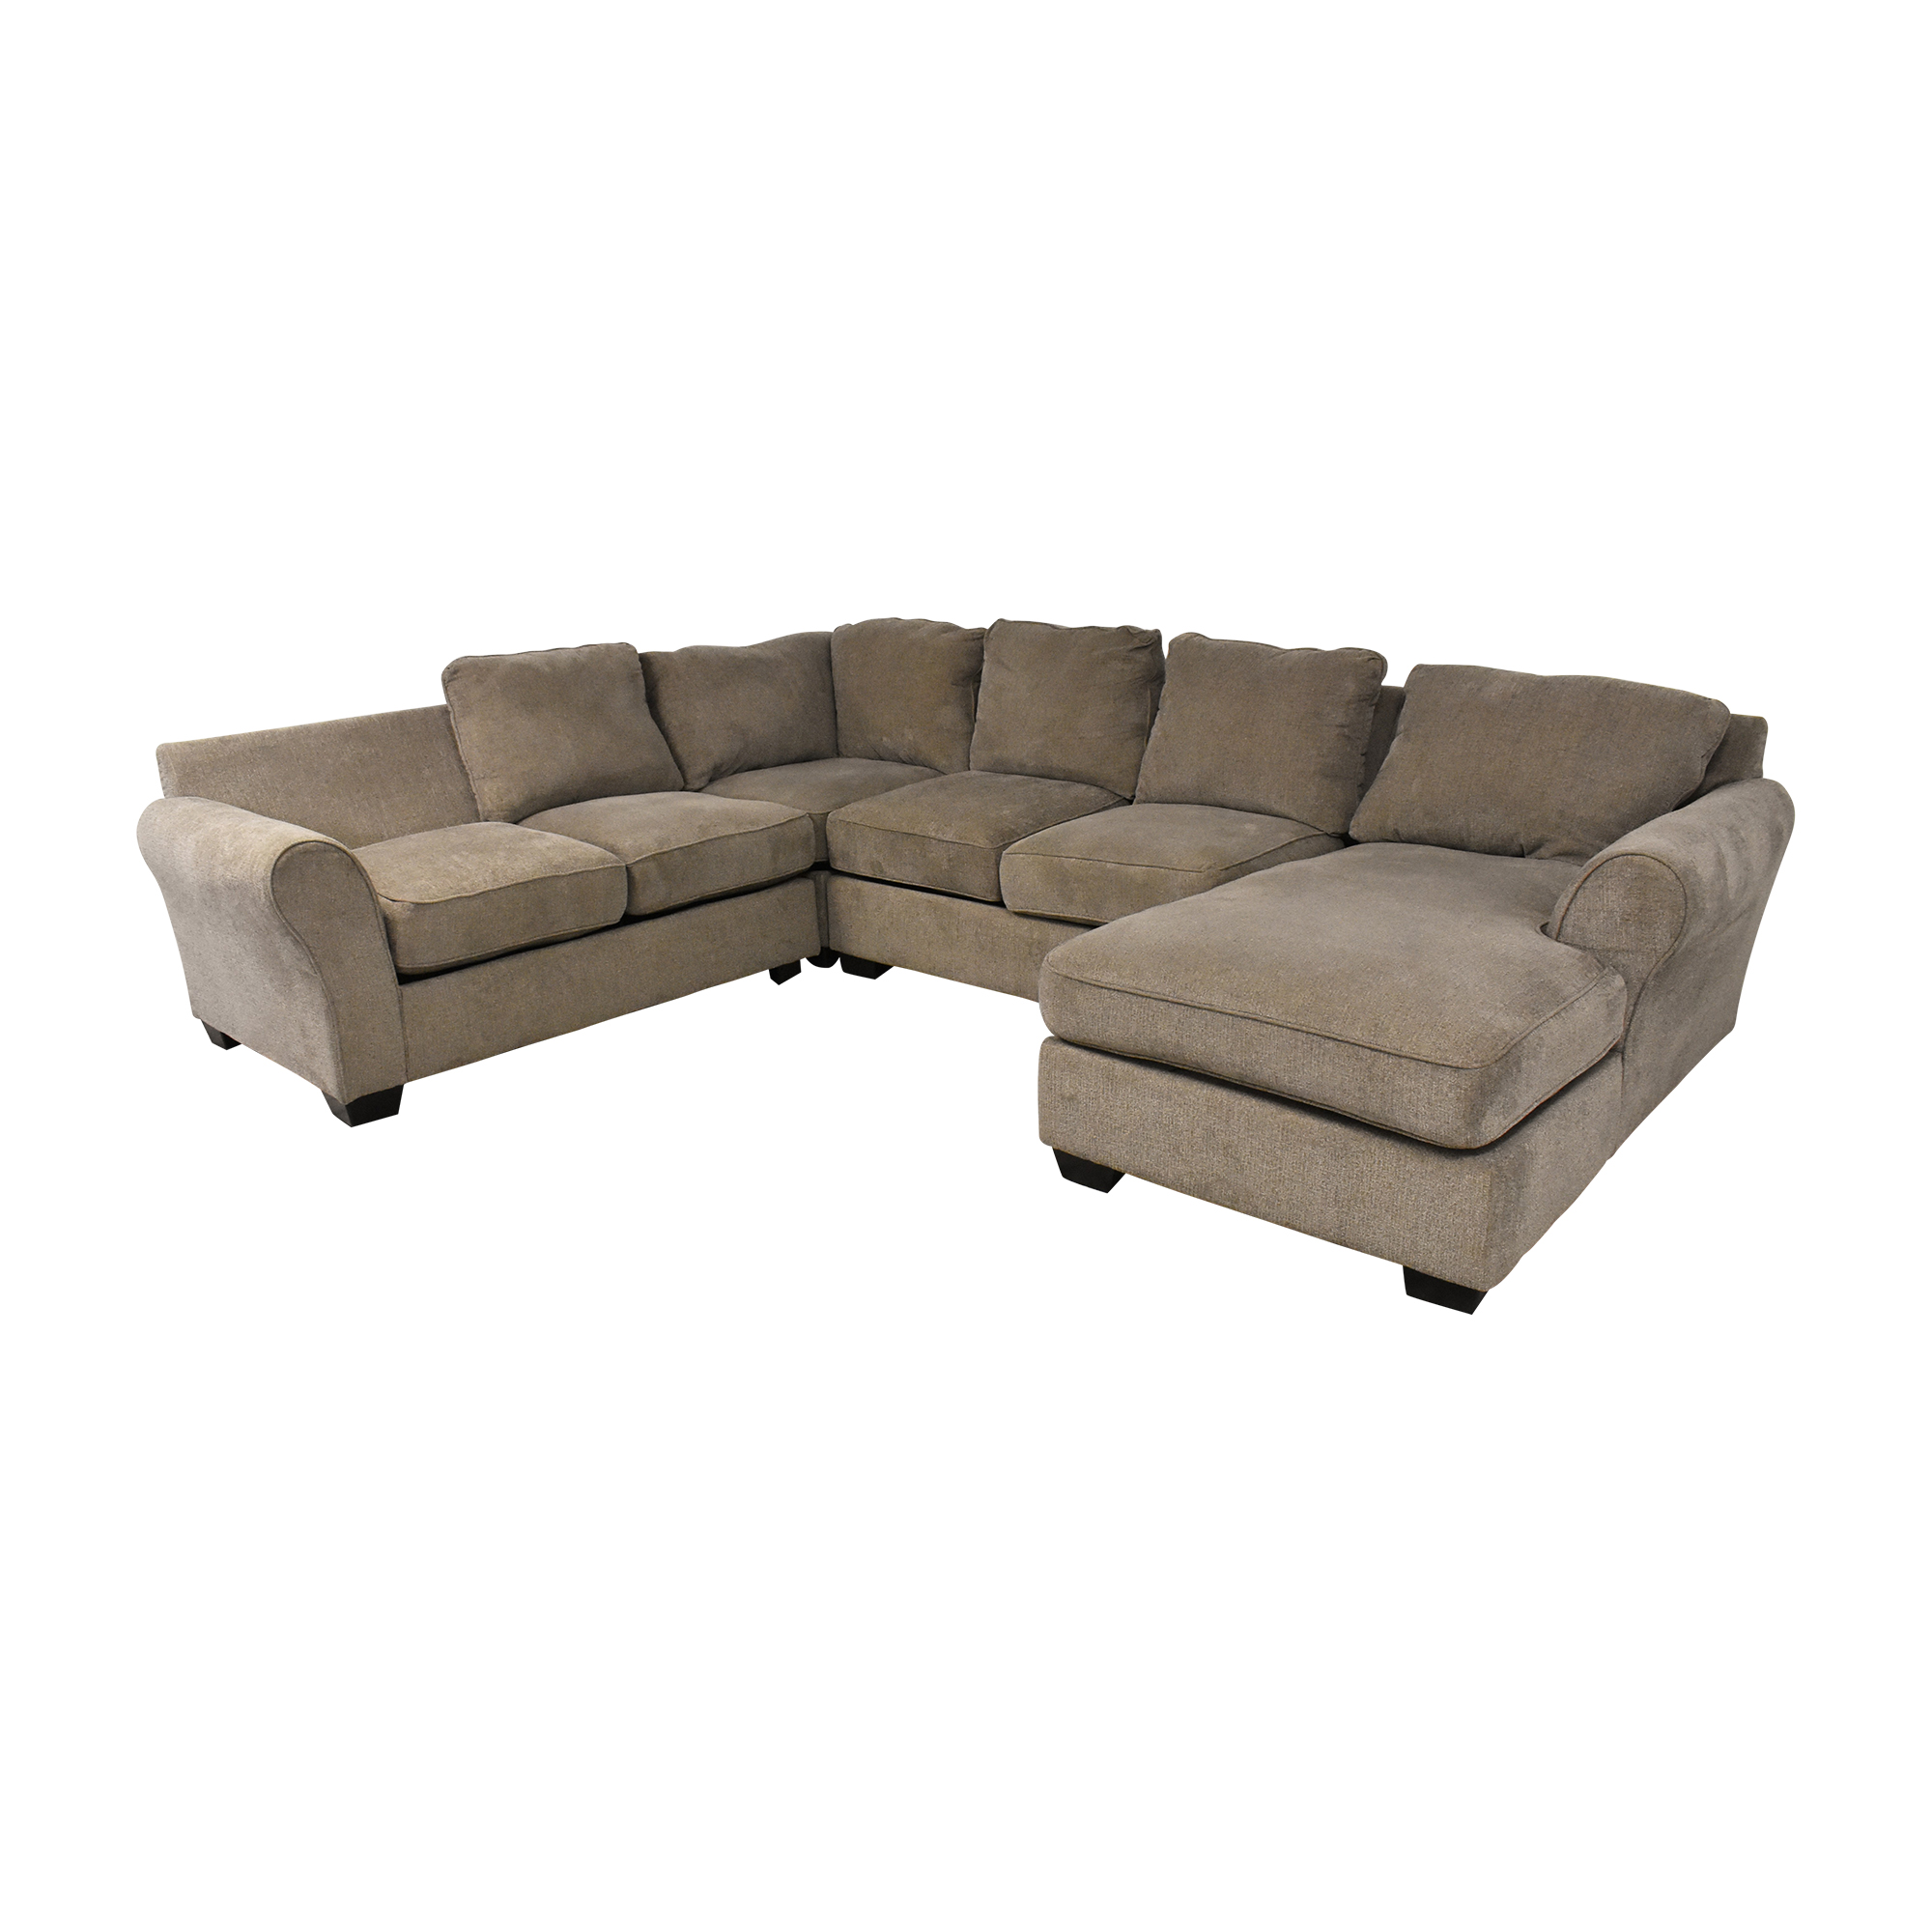 Ashley Furniture Pantomime U Shaped Sectional Sofa / Sectionals